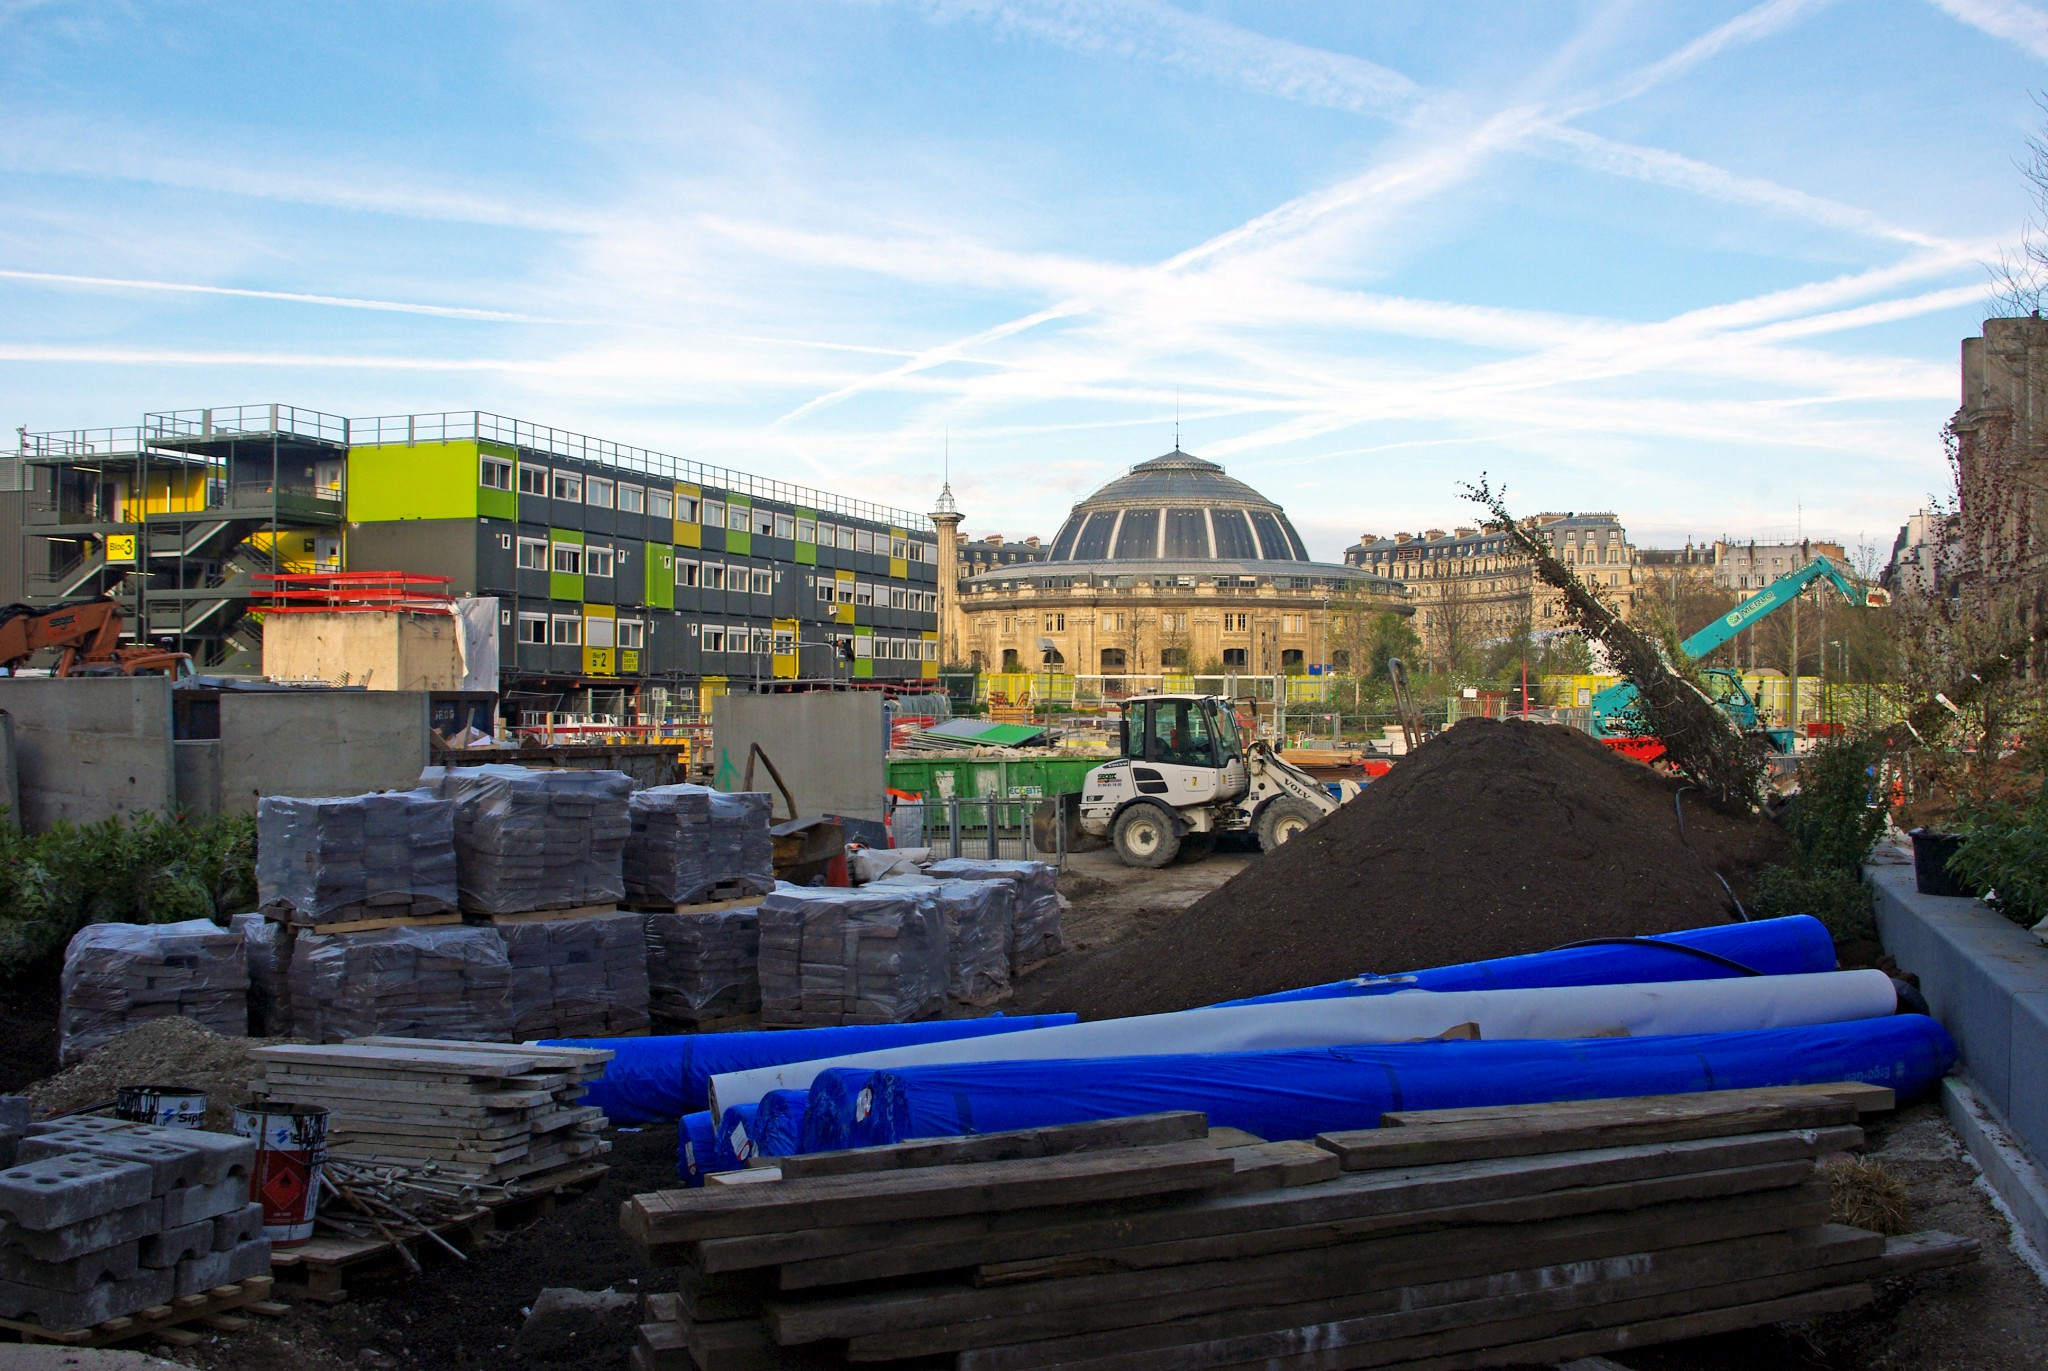 Work in progress at Les Halles, Paris © French Moments